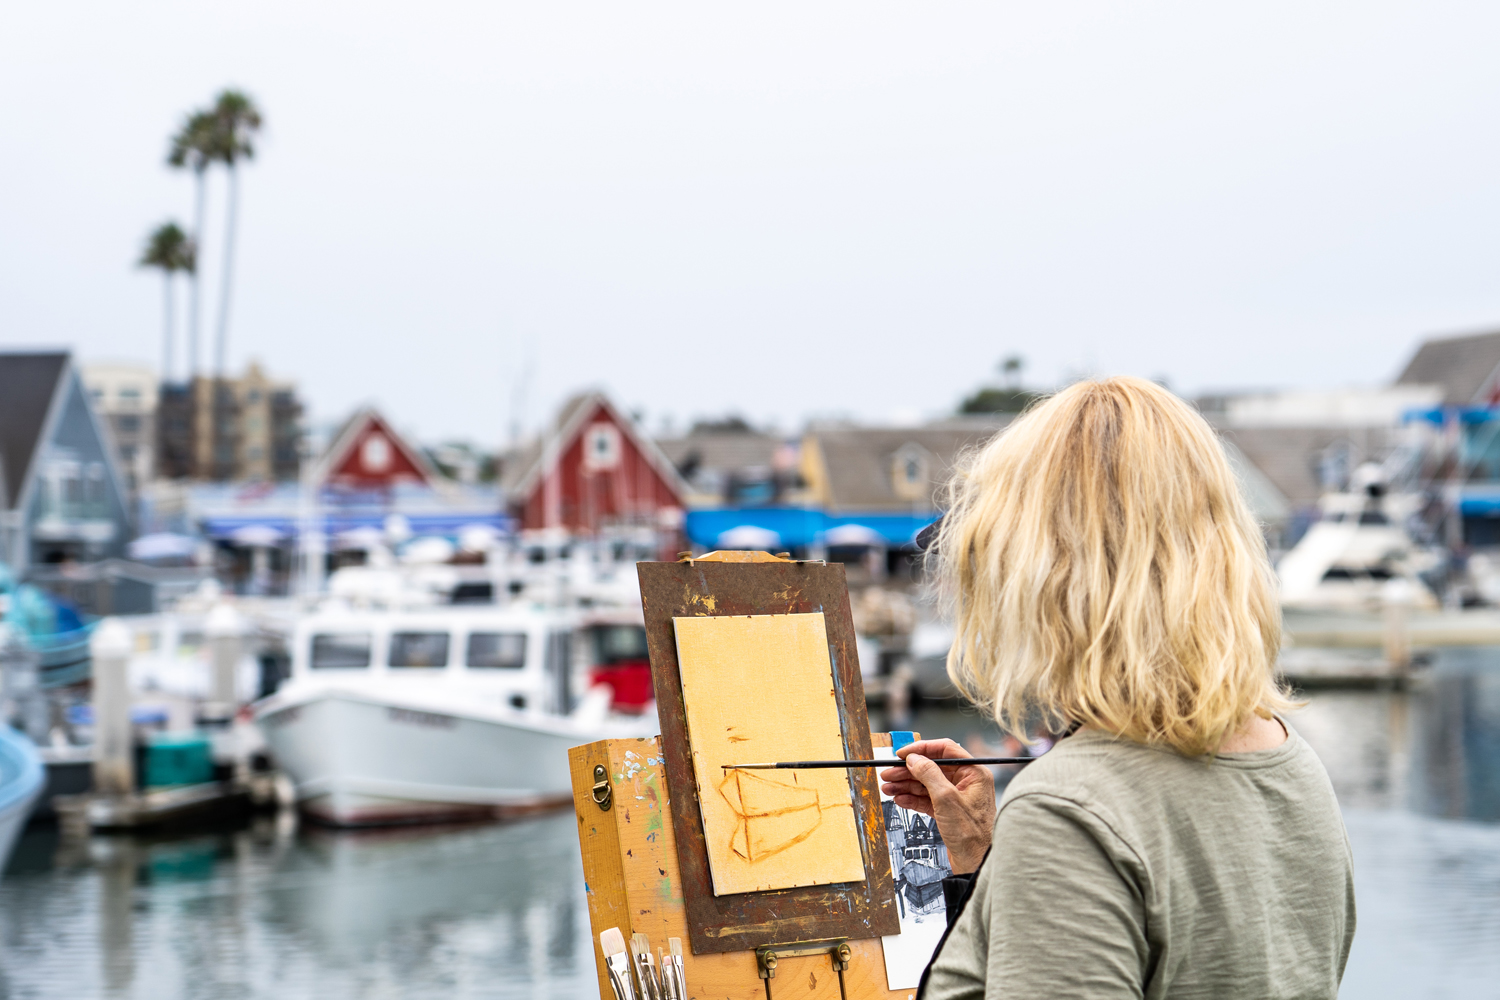 Workshop with Mark Fehlman at the harbor, July 25